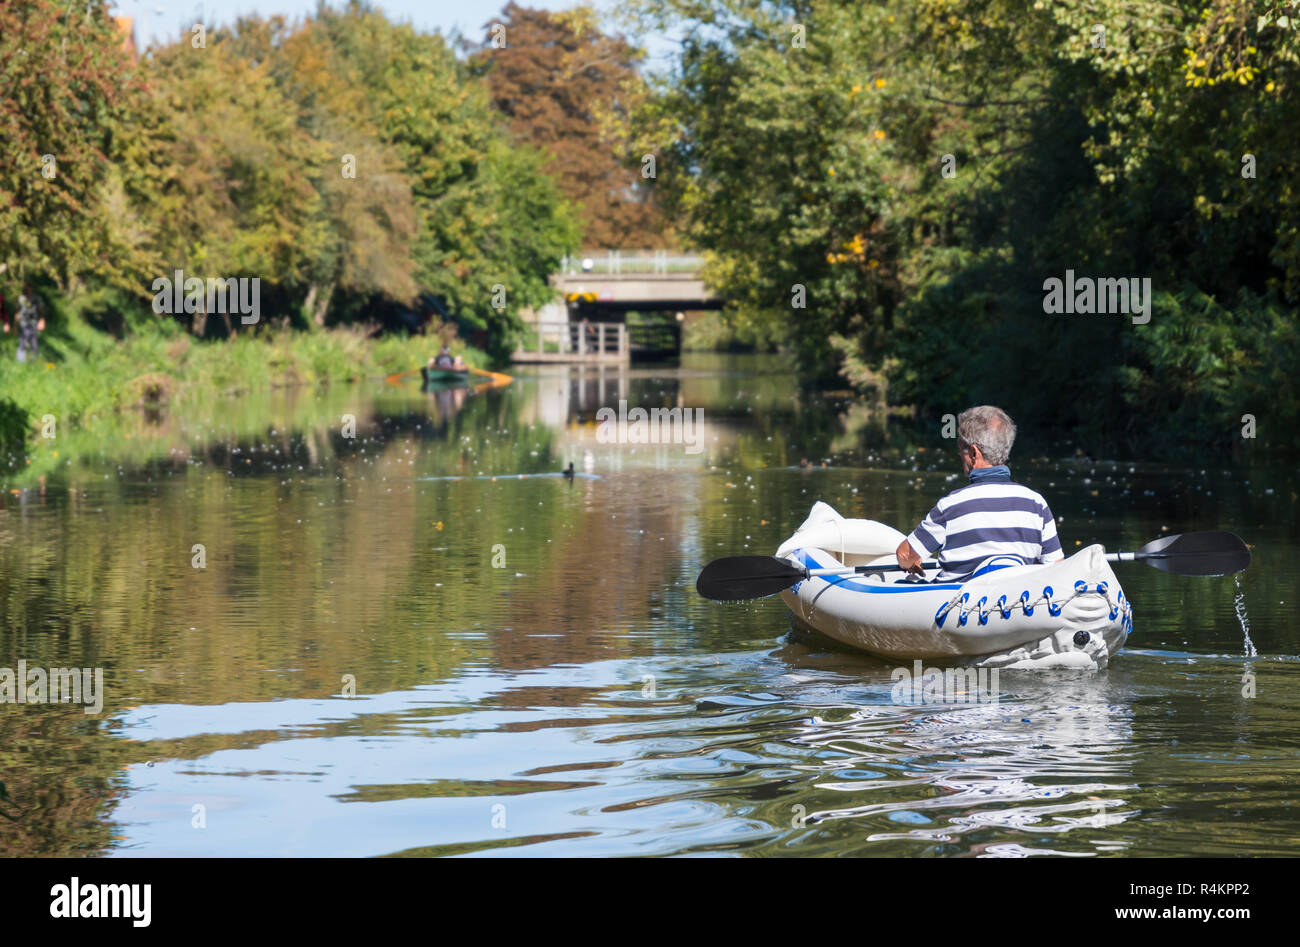 Man in a Sea Eagle SE-370 inflatable kayak on the Chichester Canal in Autumn in West Sussex, England, UK. Man kayaking. - Stock Image